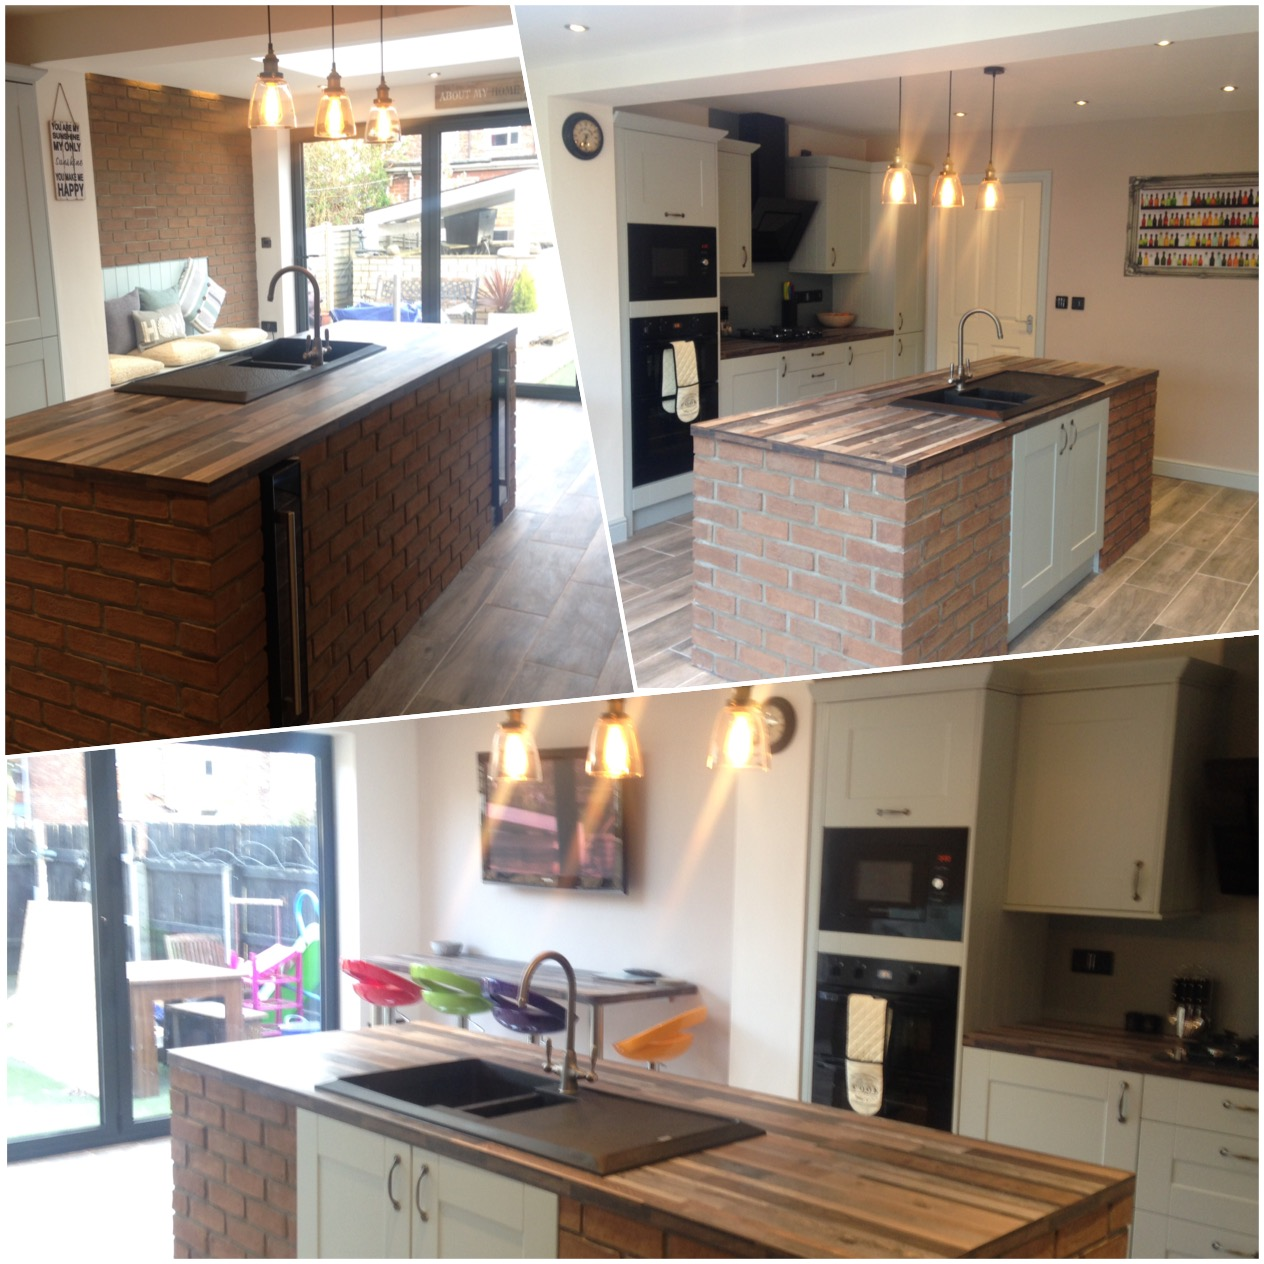 Kitchen Refurbishment – After